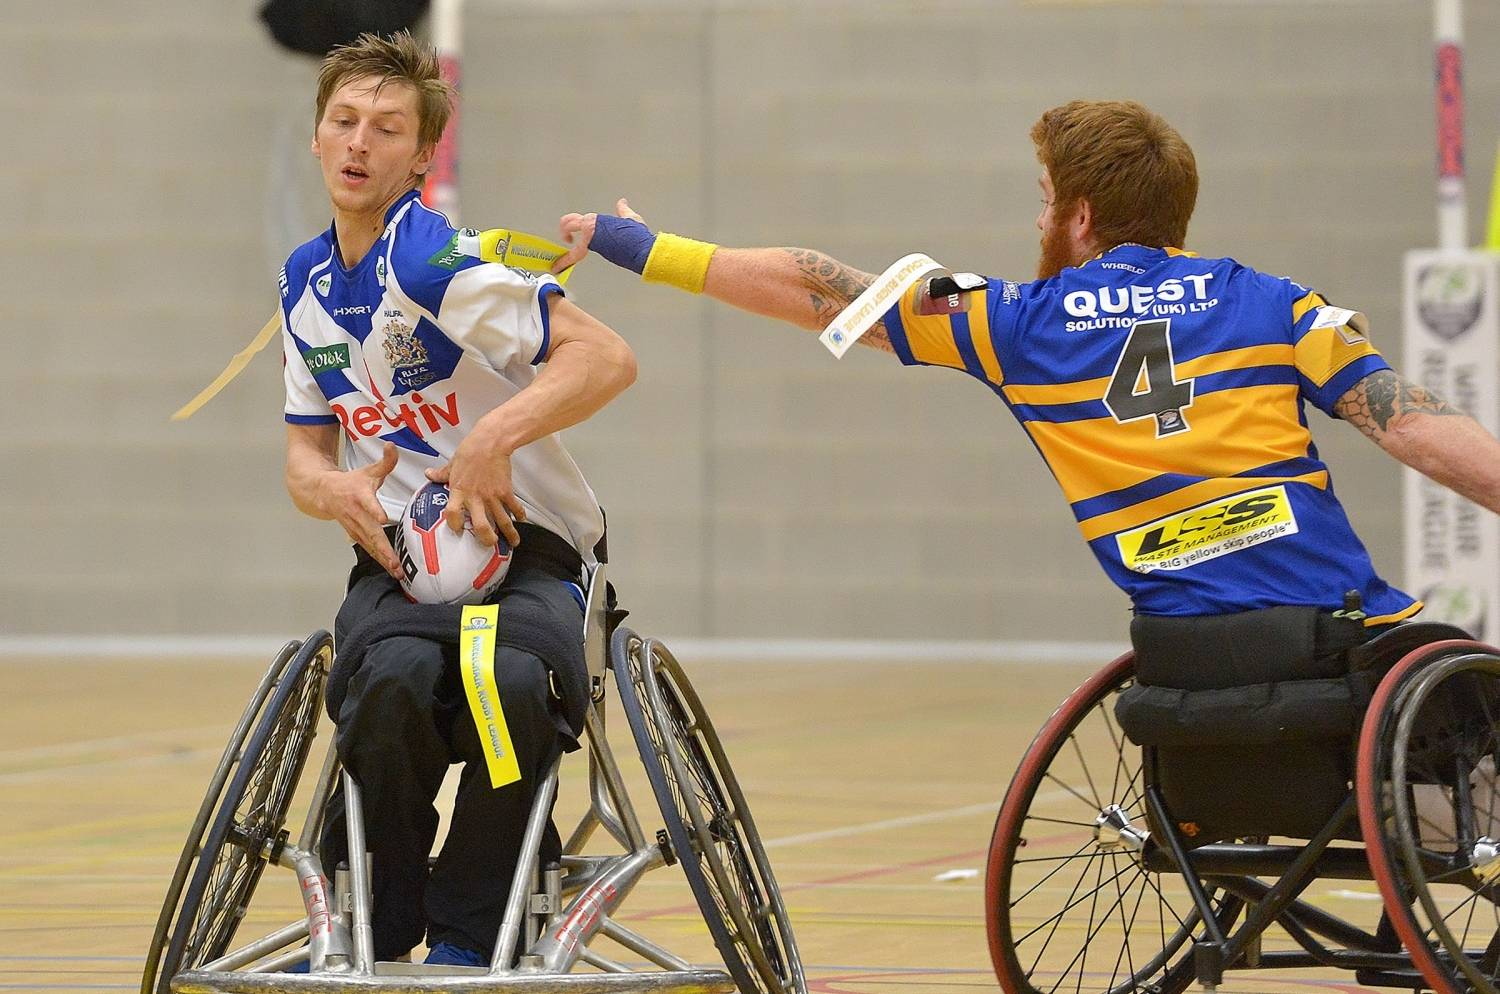 Brown scores 15 tries as Halifax win Wheelchair Challenge Cup